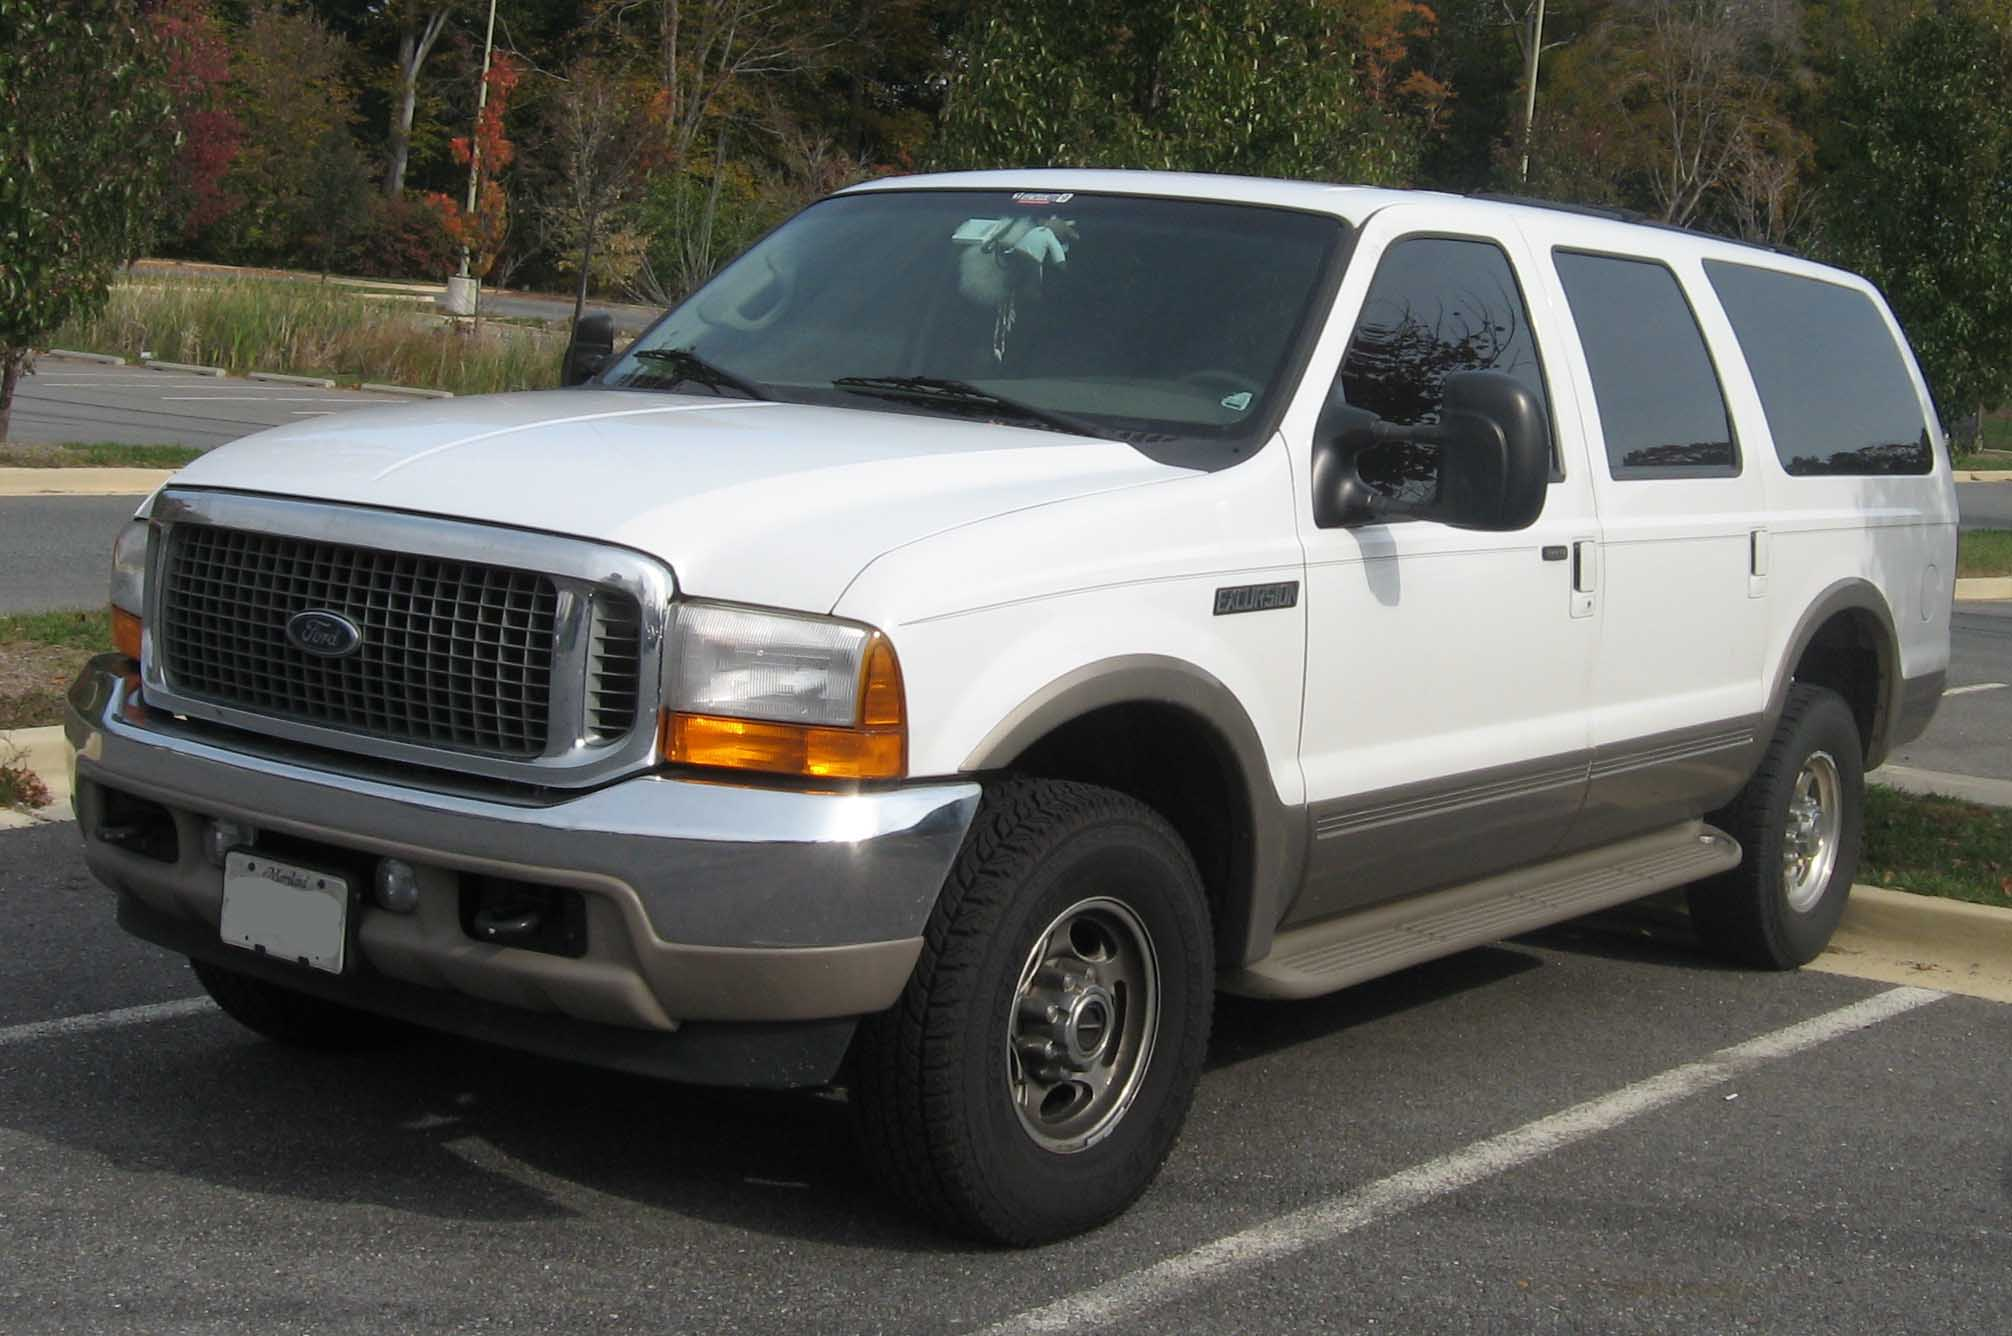 Ford Excursion photo 10